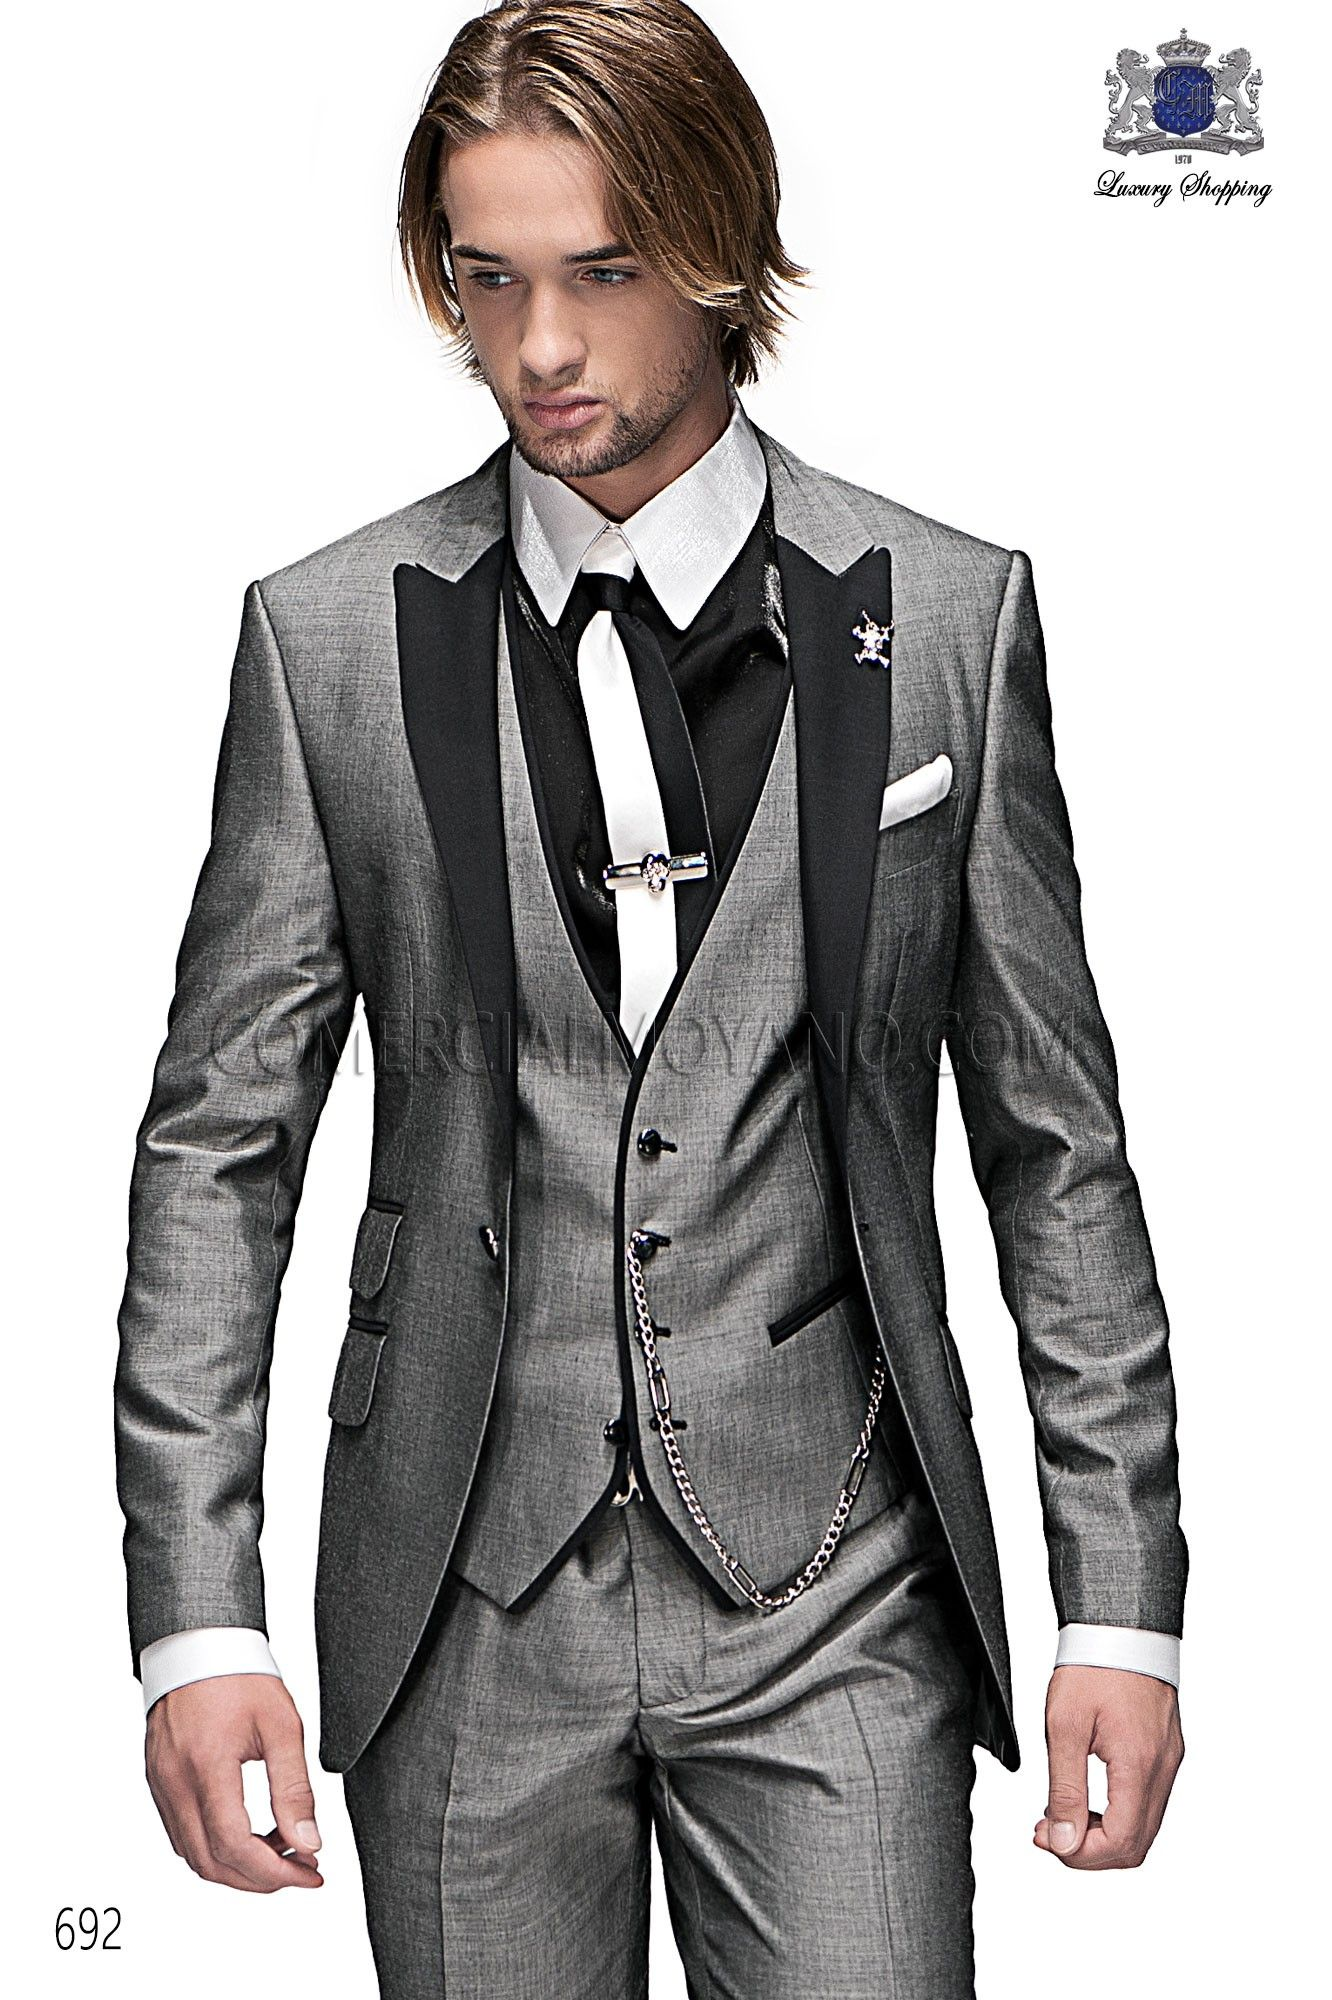 men suits fashion | Emotion gray men wedding suit model 692 ...